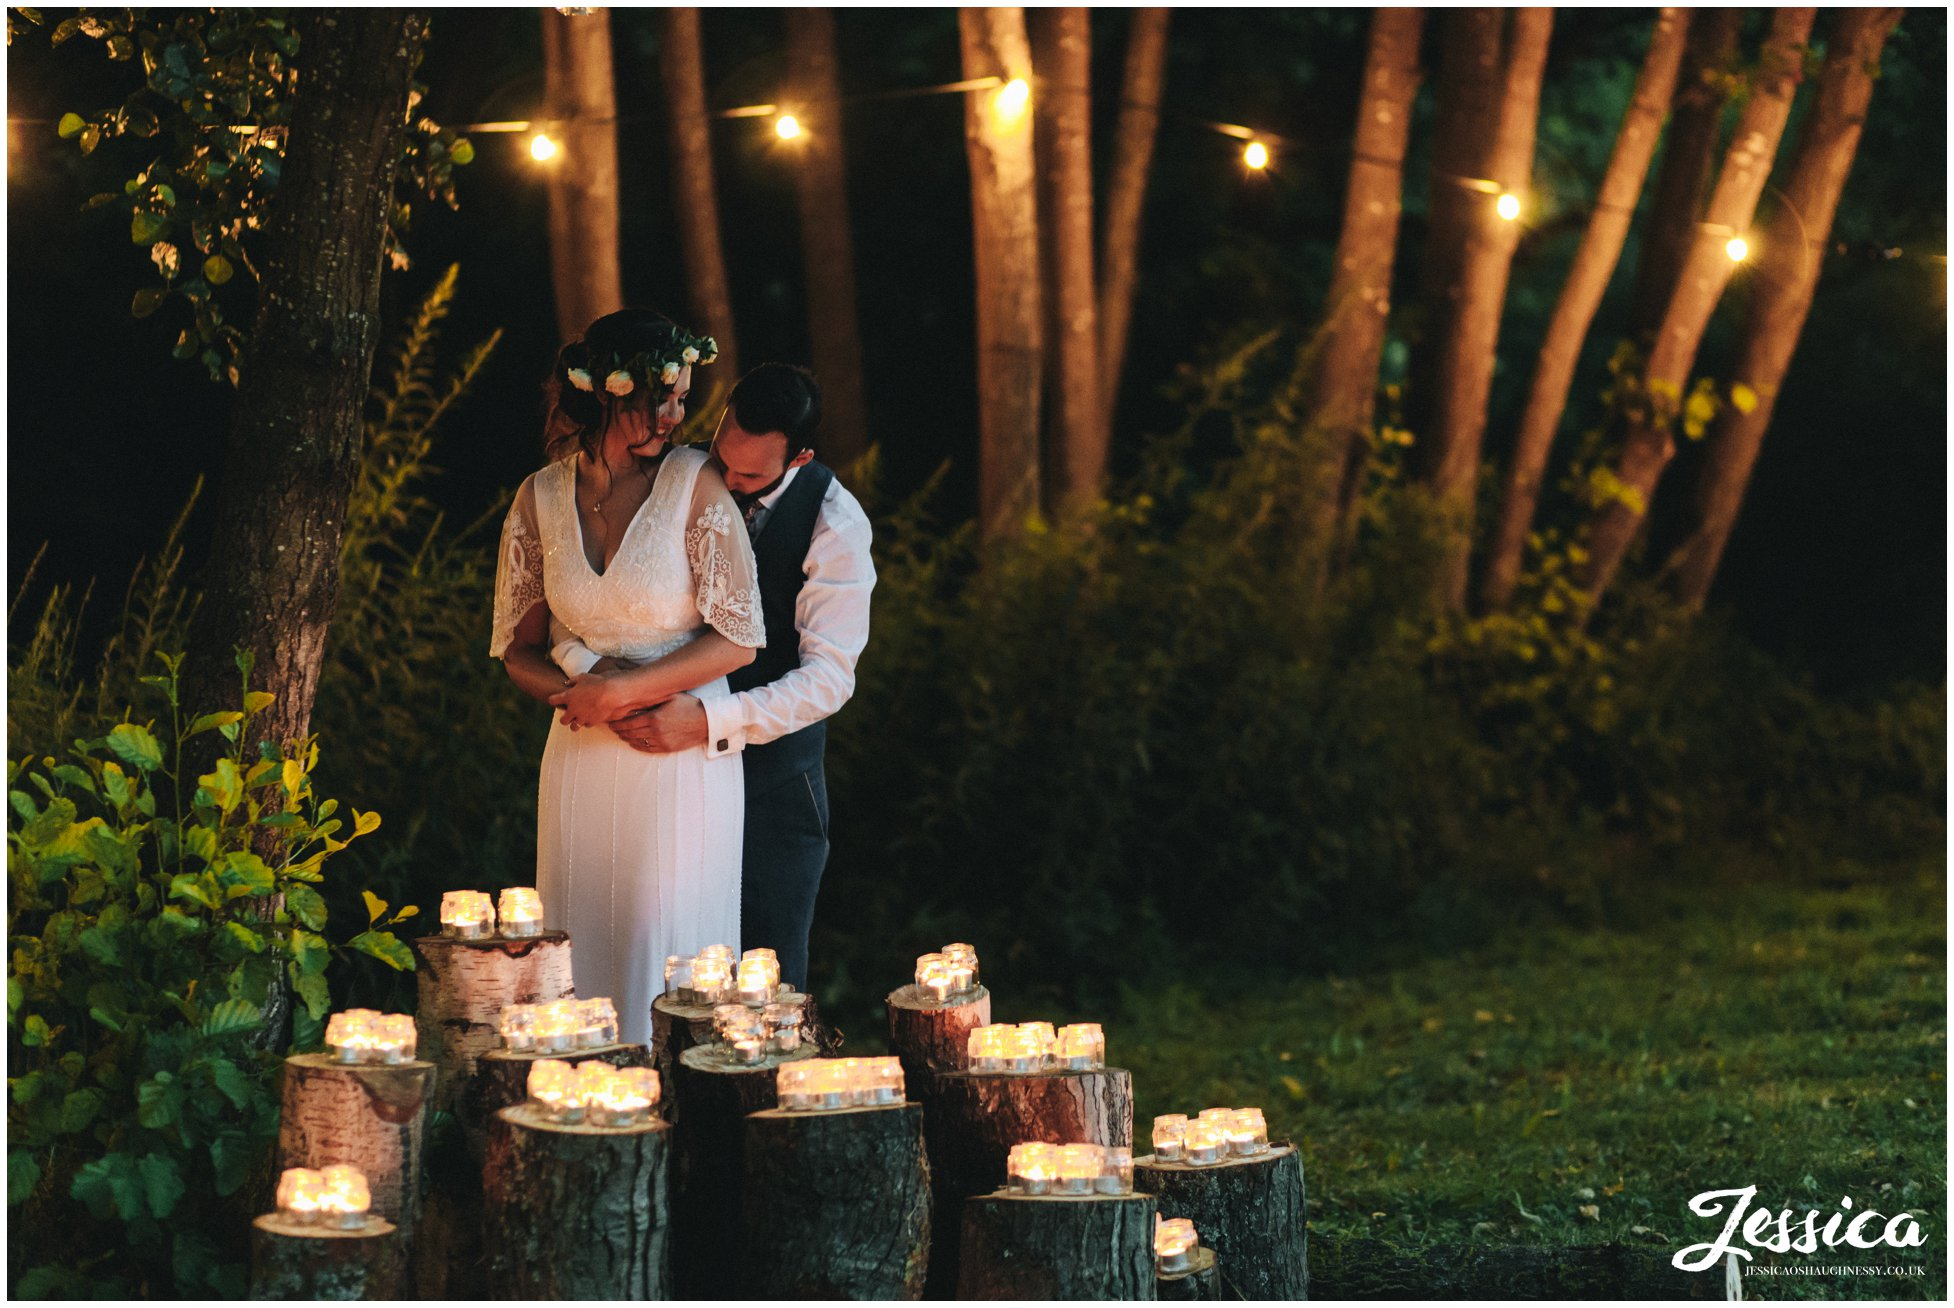 newly wed's embrace in front of lit candles as the sun goes down